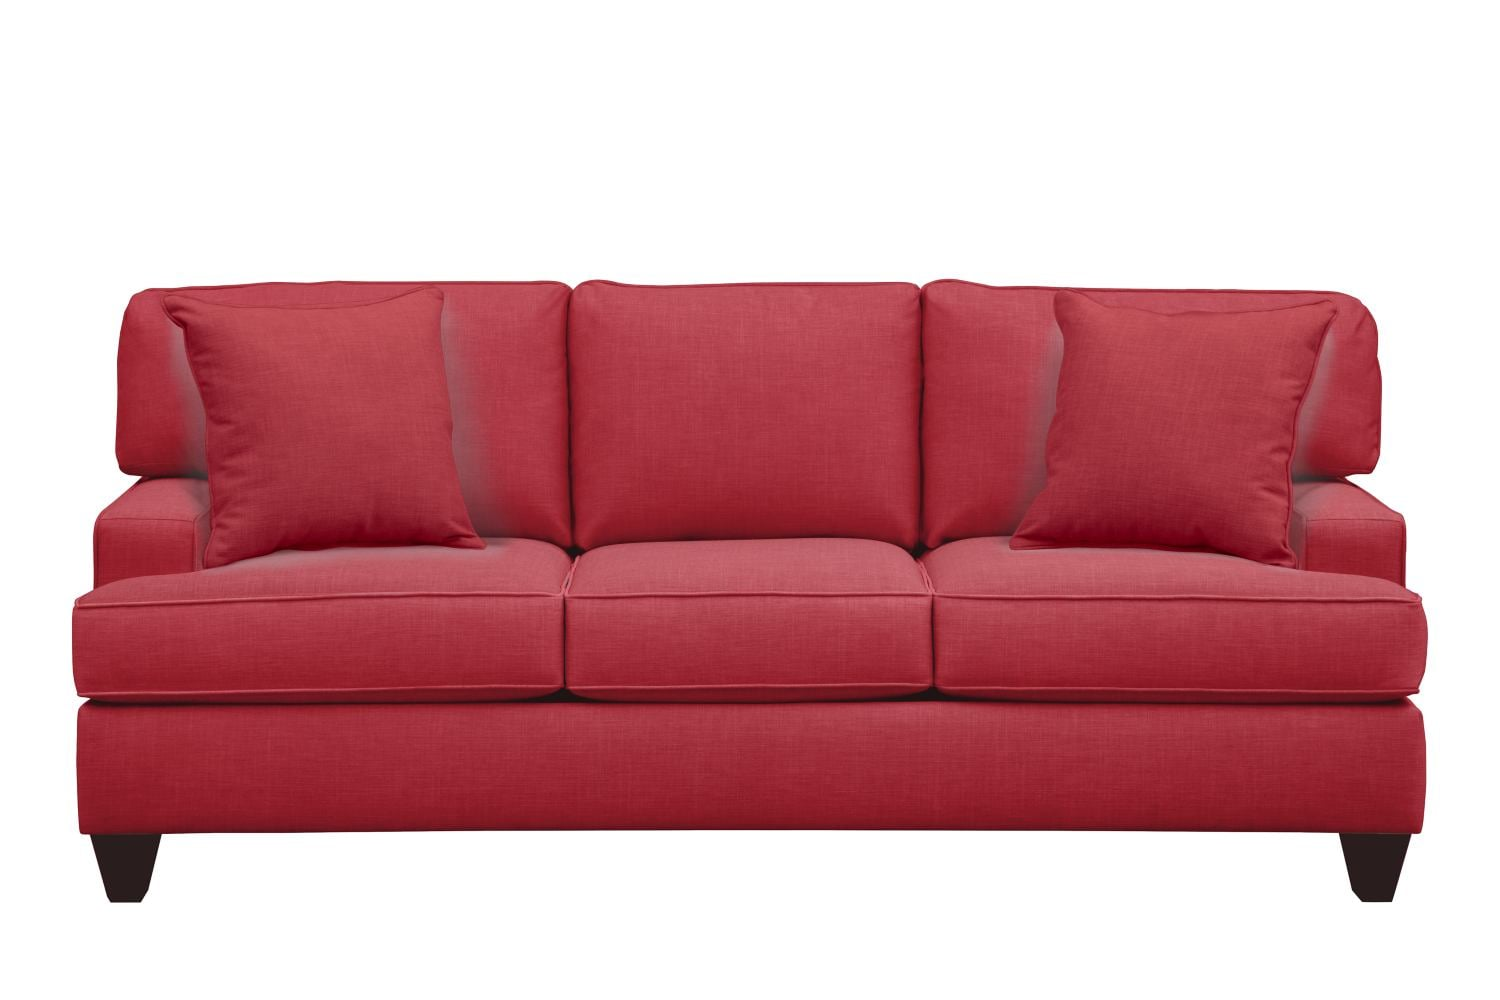 "Living Room Furniture - Conner Track Arm Sofa 87"" Oakley III Tomato w/ Oakley III Tomato Pillow"